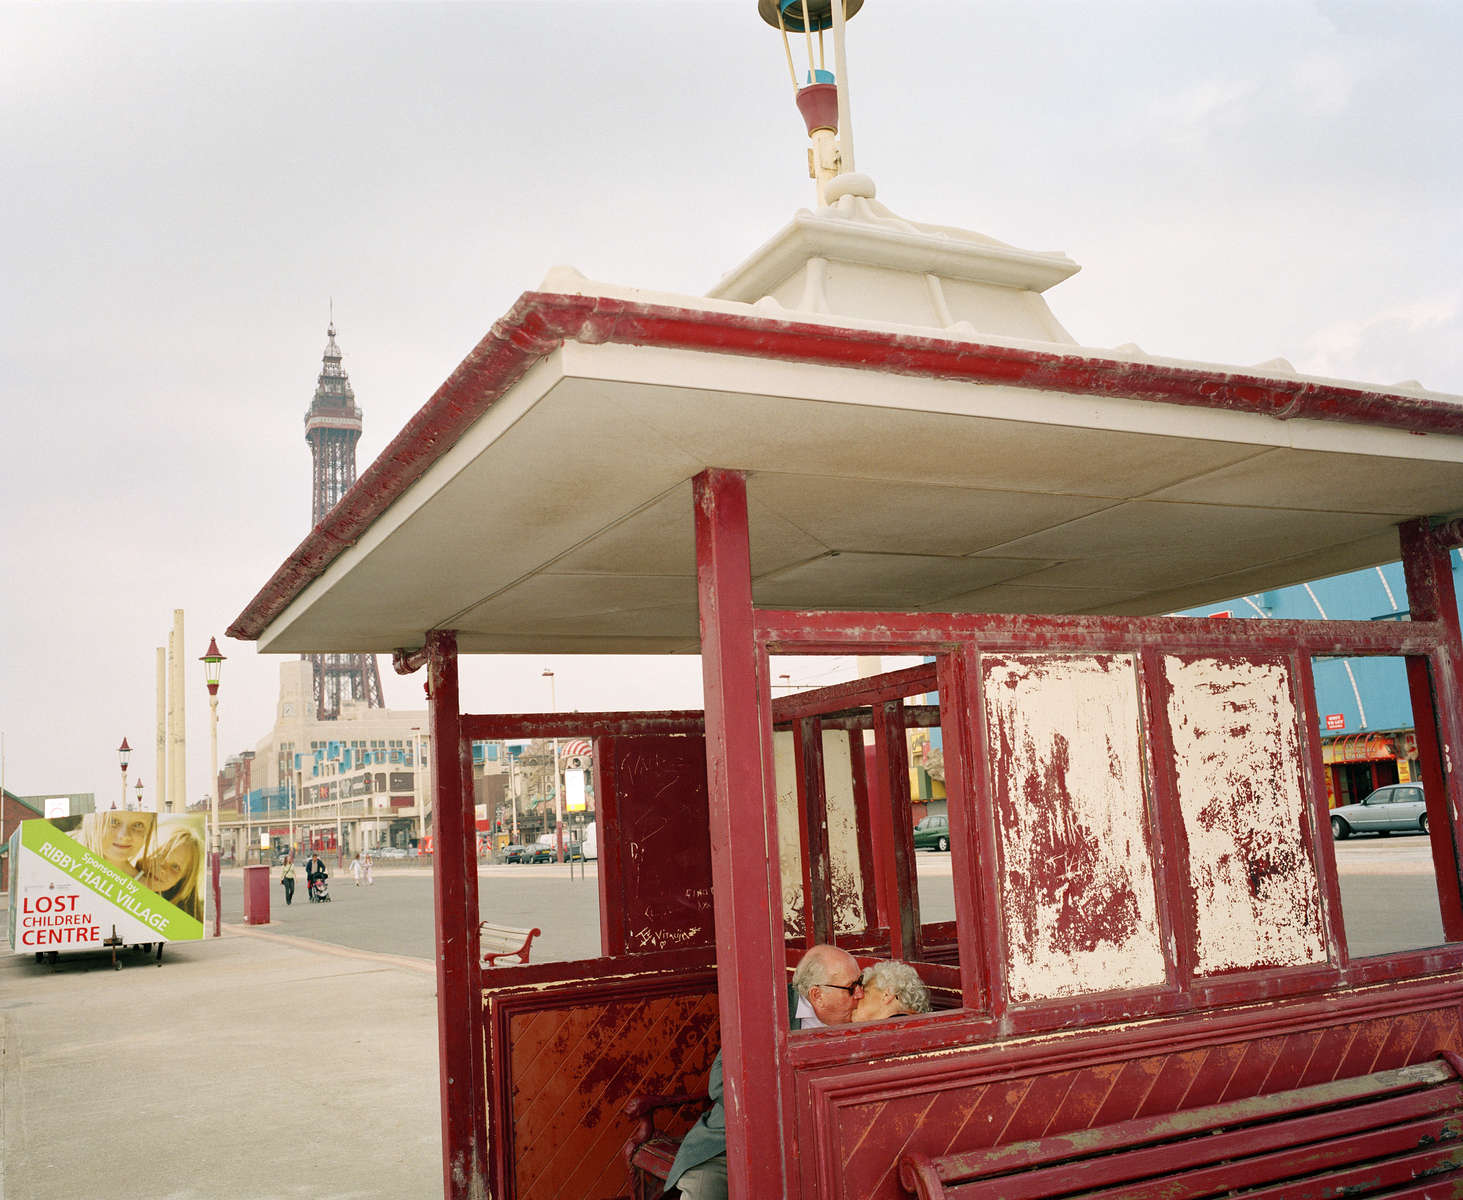 An elderly couple kiss in a weather shelter on Blackpool promenade. The town has for a long time been a destination for those in or looking for love.